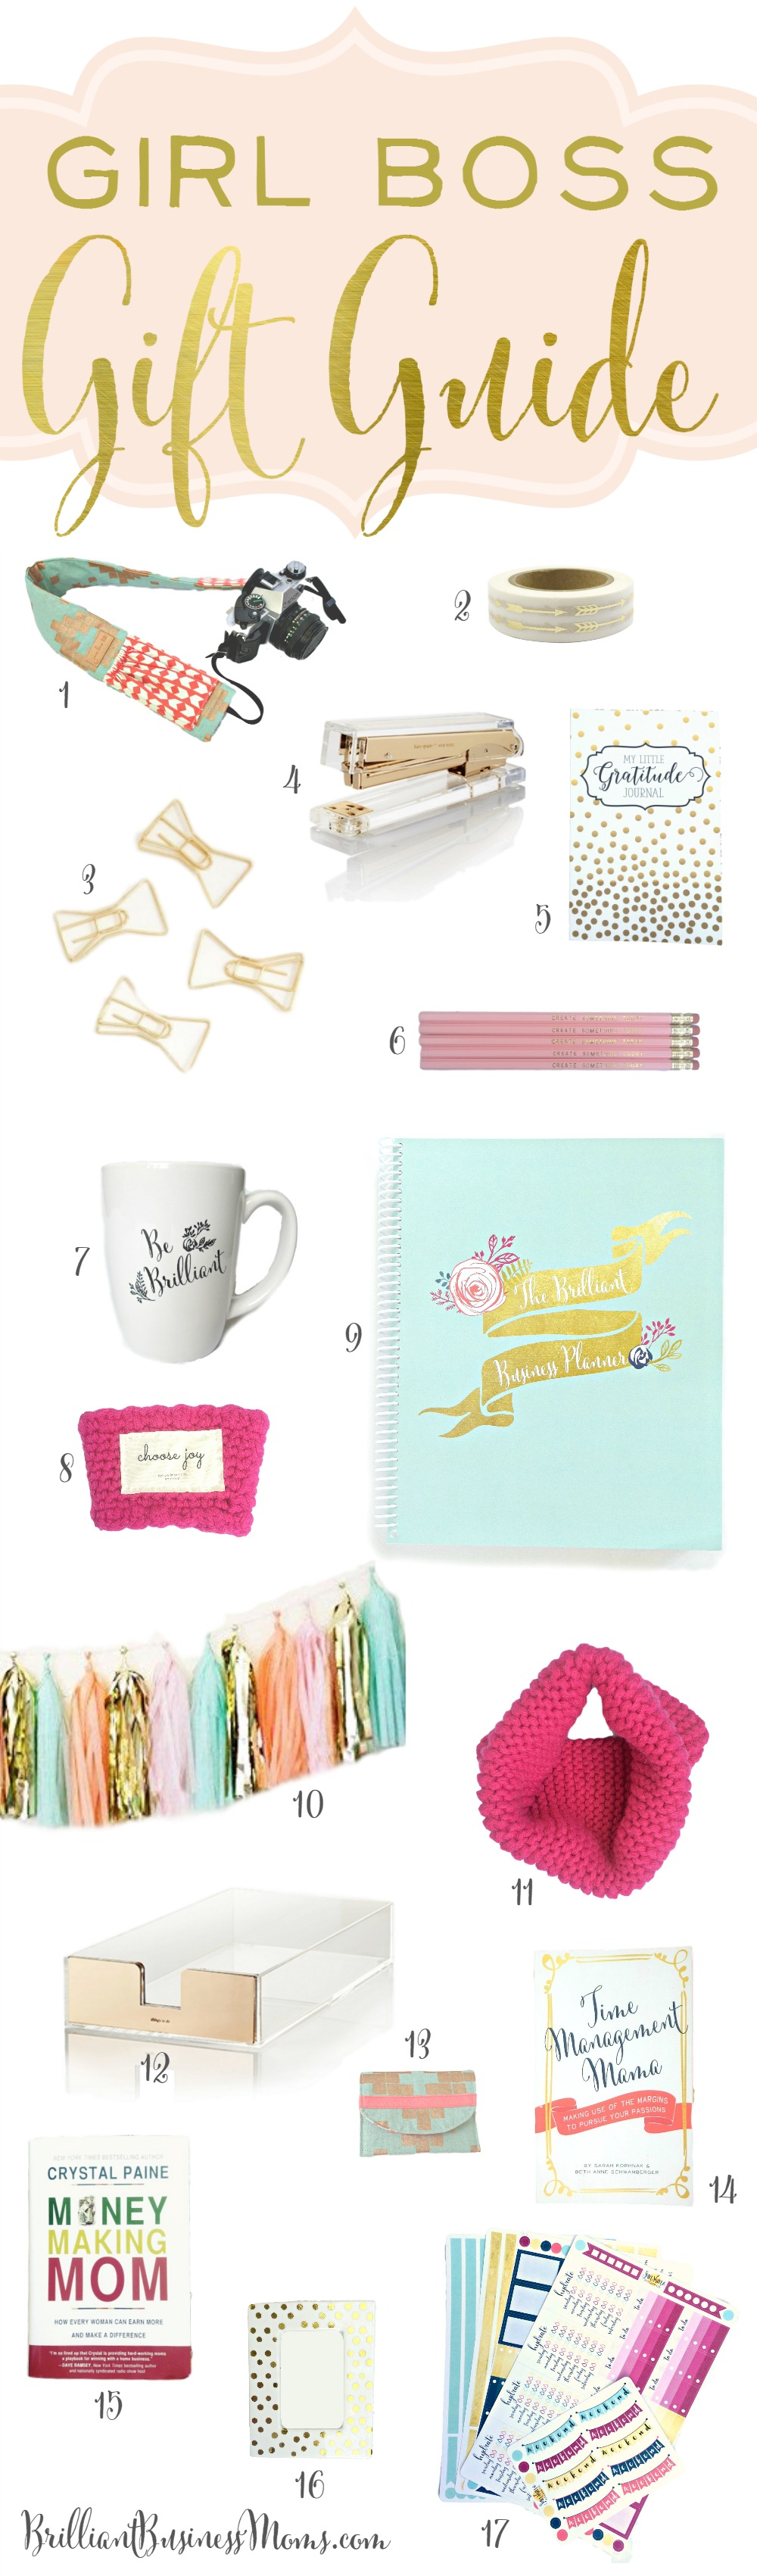 girl boss gift guide for christmas 2015 plus a giveaway great ideas for entrepreneurs